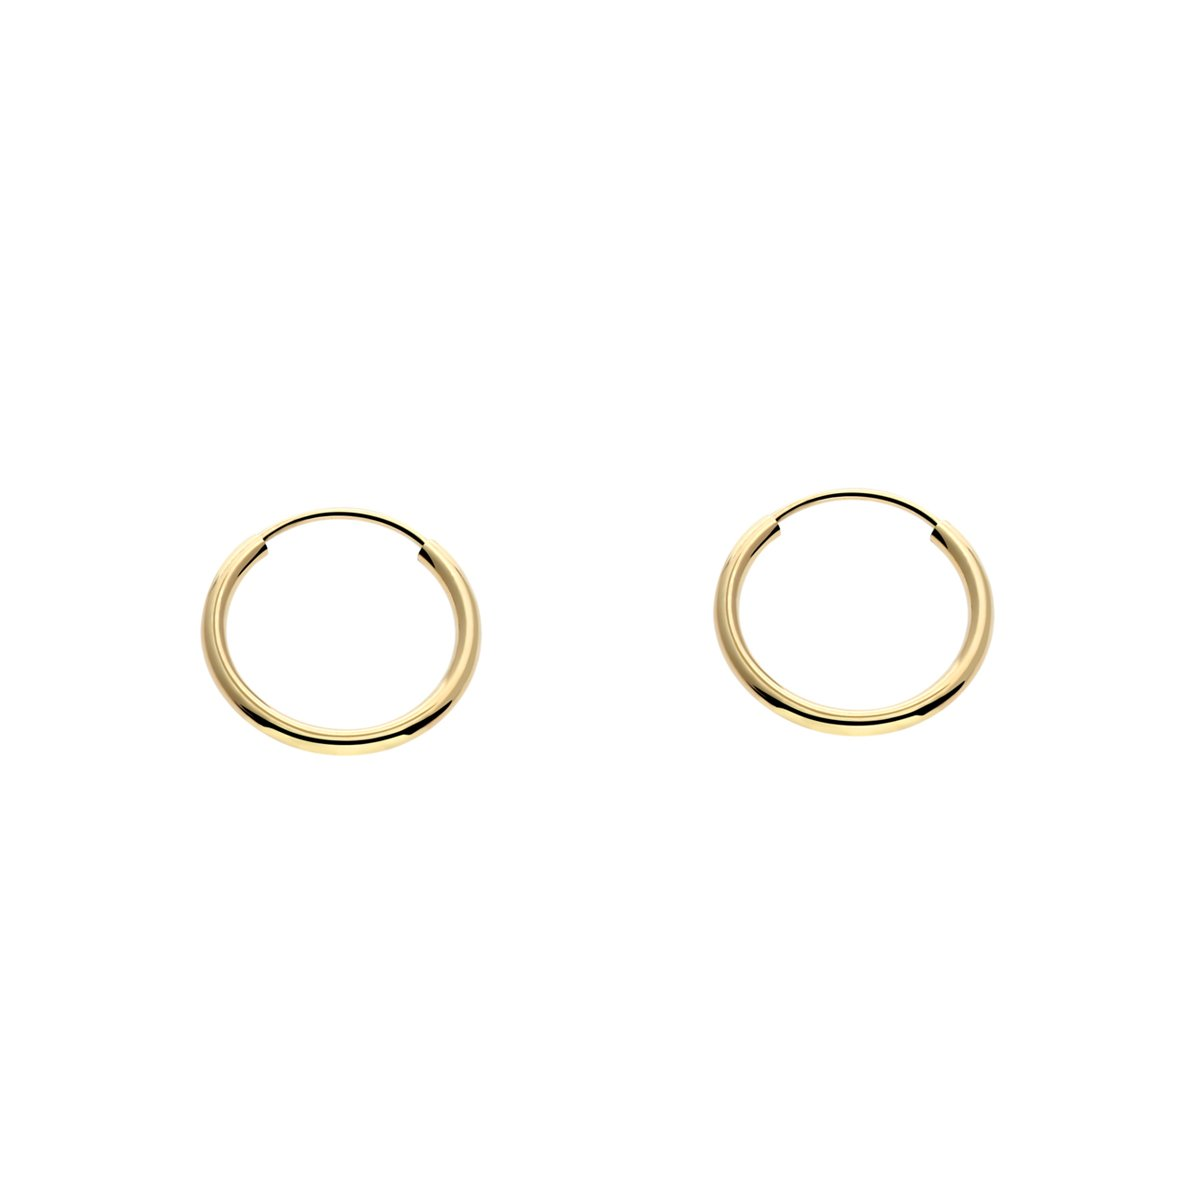 14k Yellow Gold Tiny and Small Endless Hoop Earrings 10mm by Art and Molly